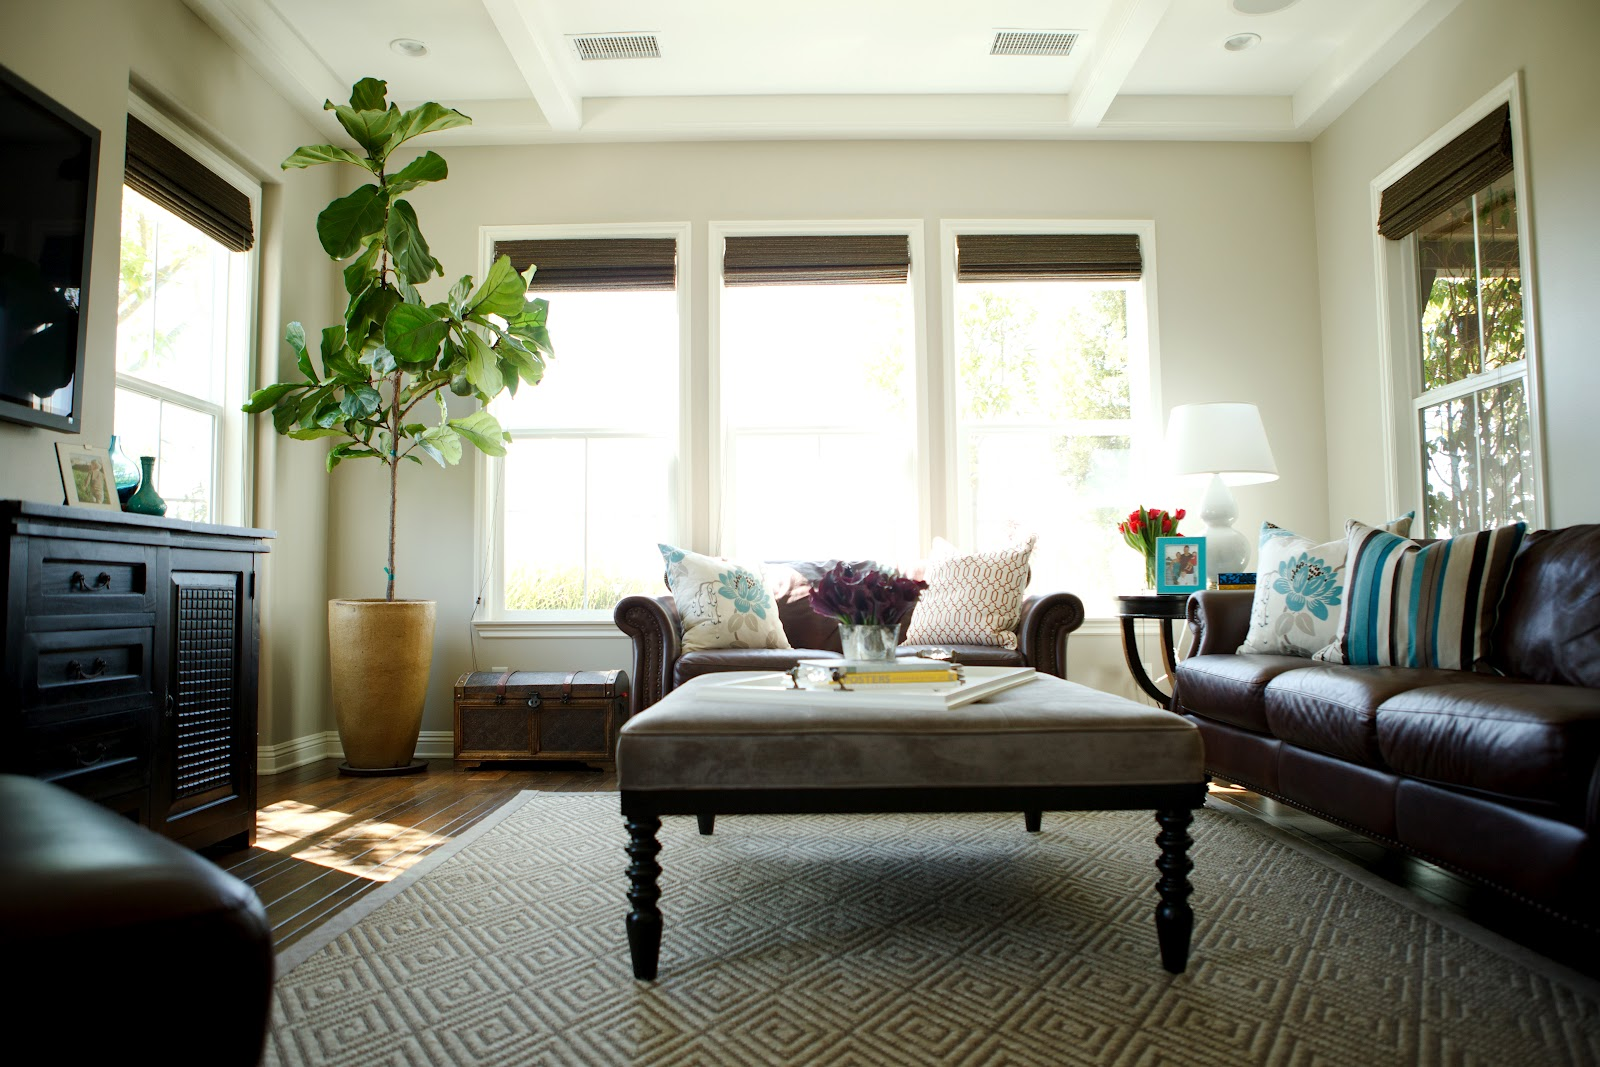 Bdg style may 2012 for Leather sofa family room